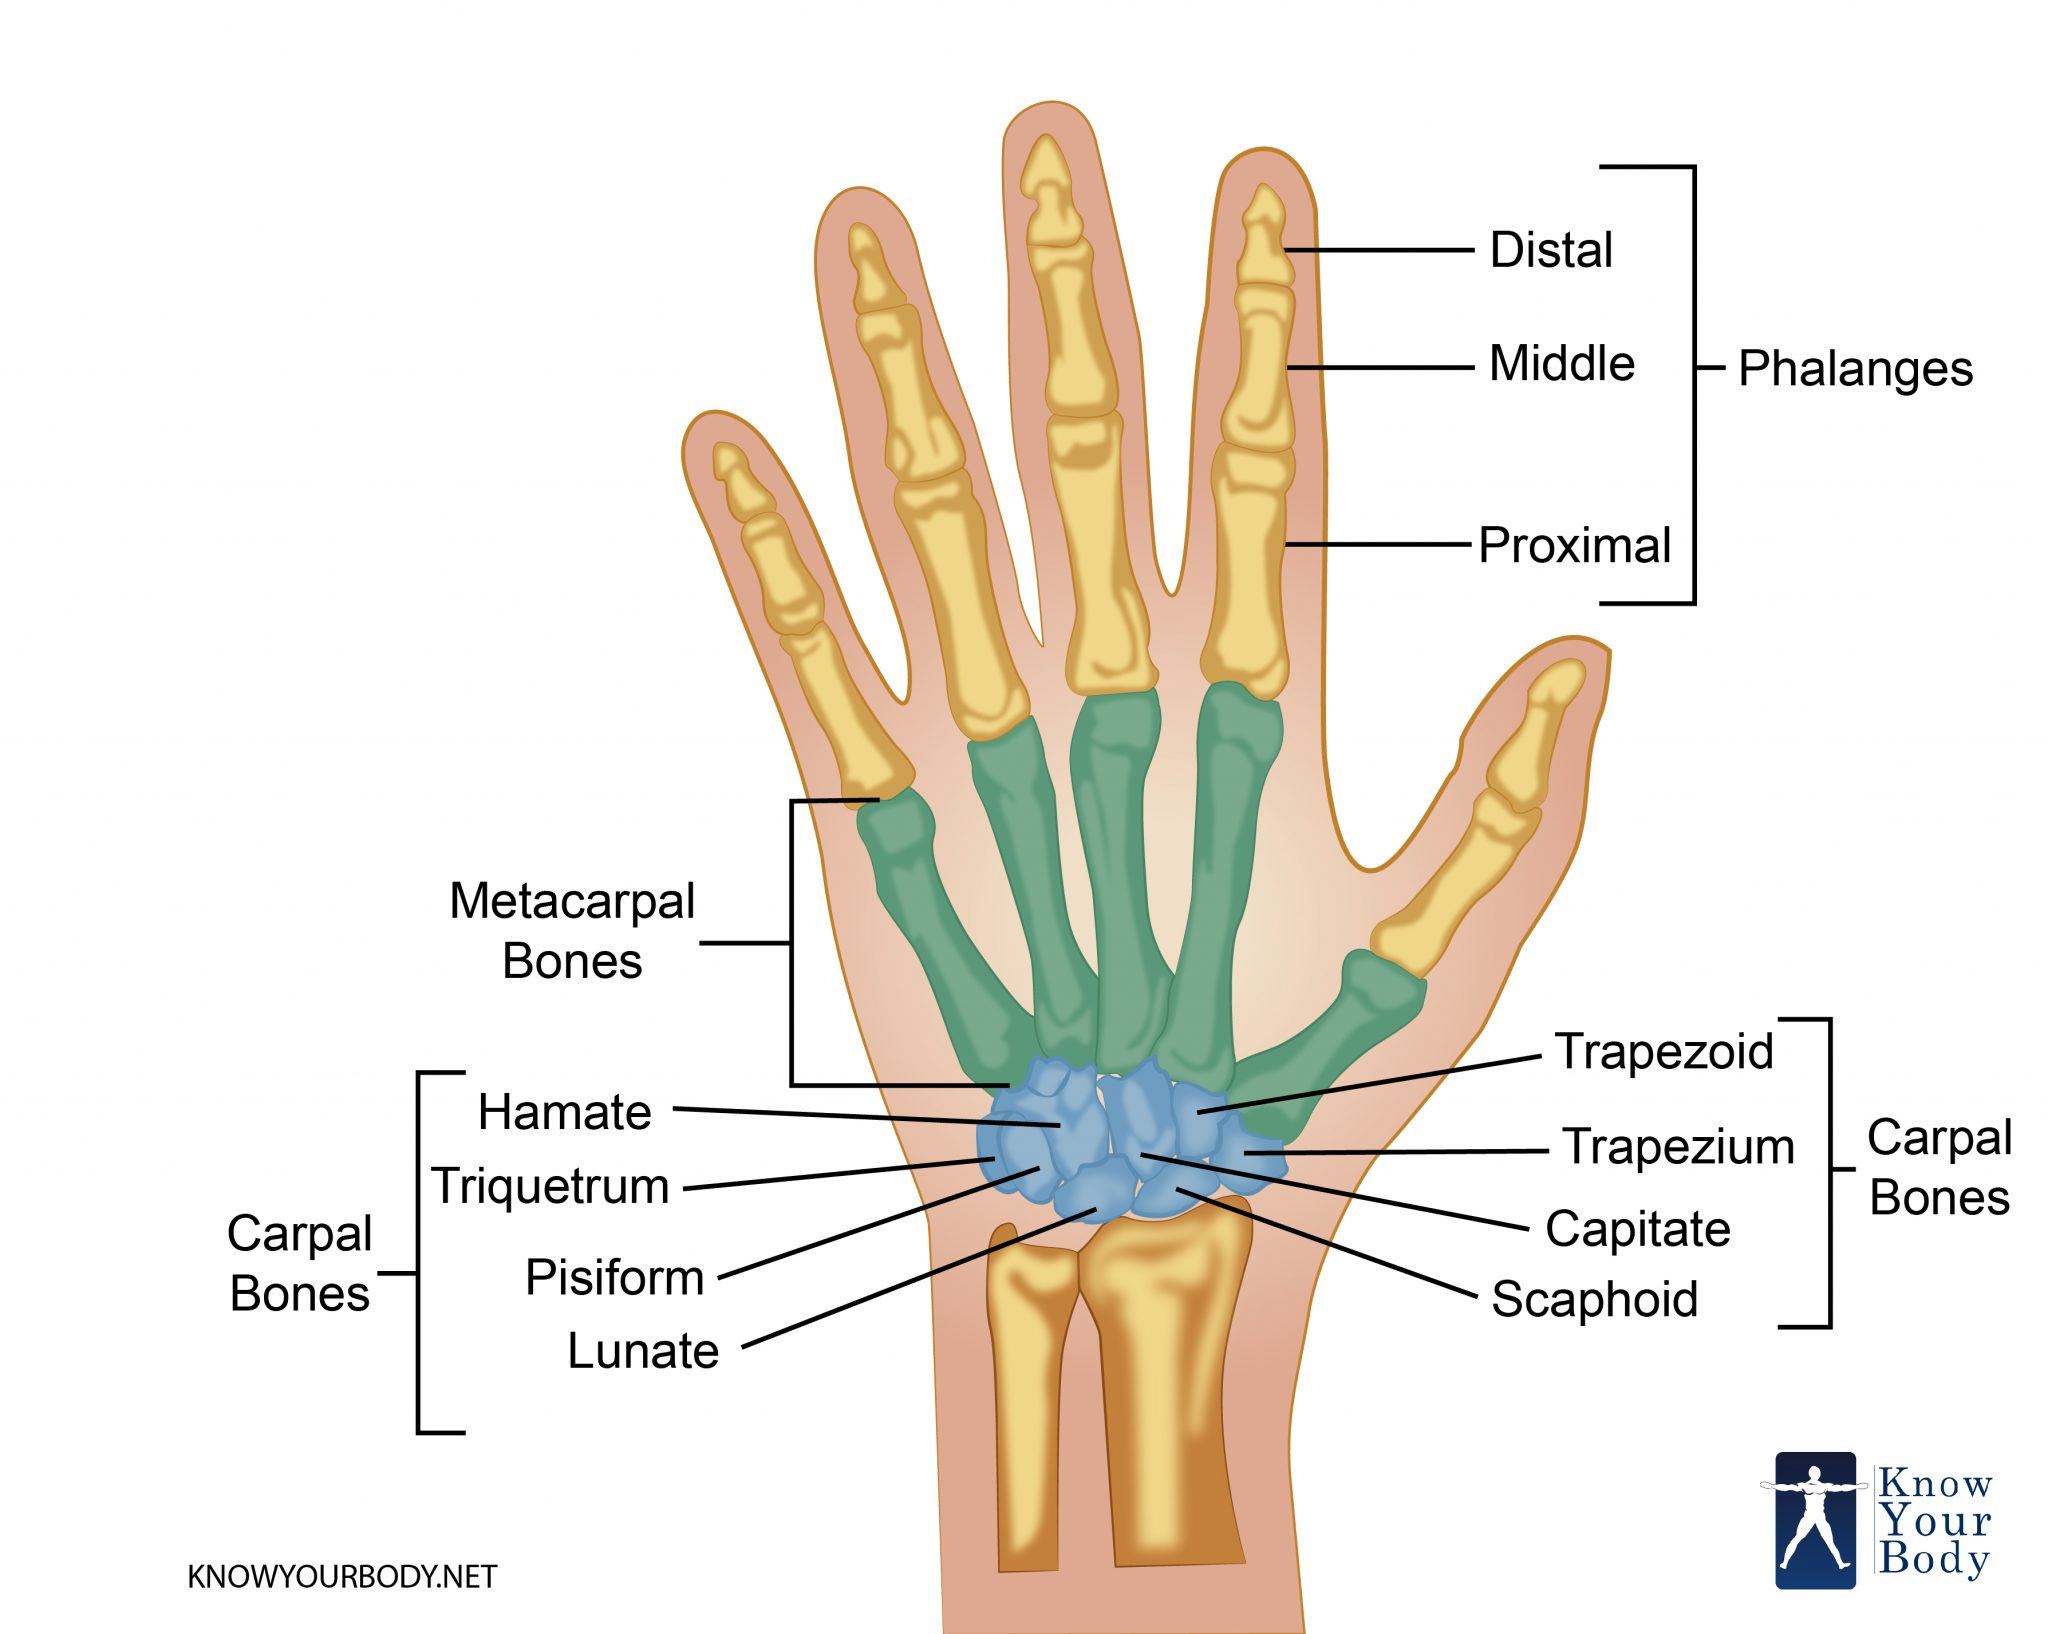 bones of the hand  hand bones anatomy